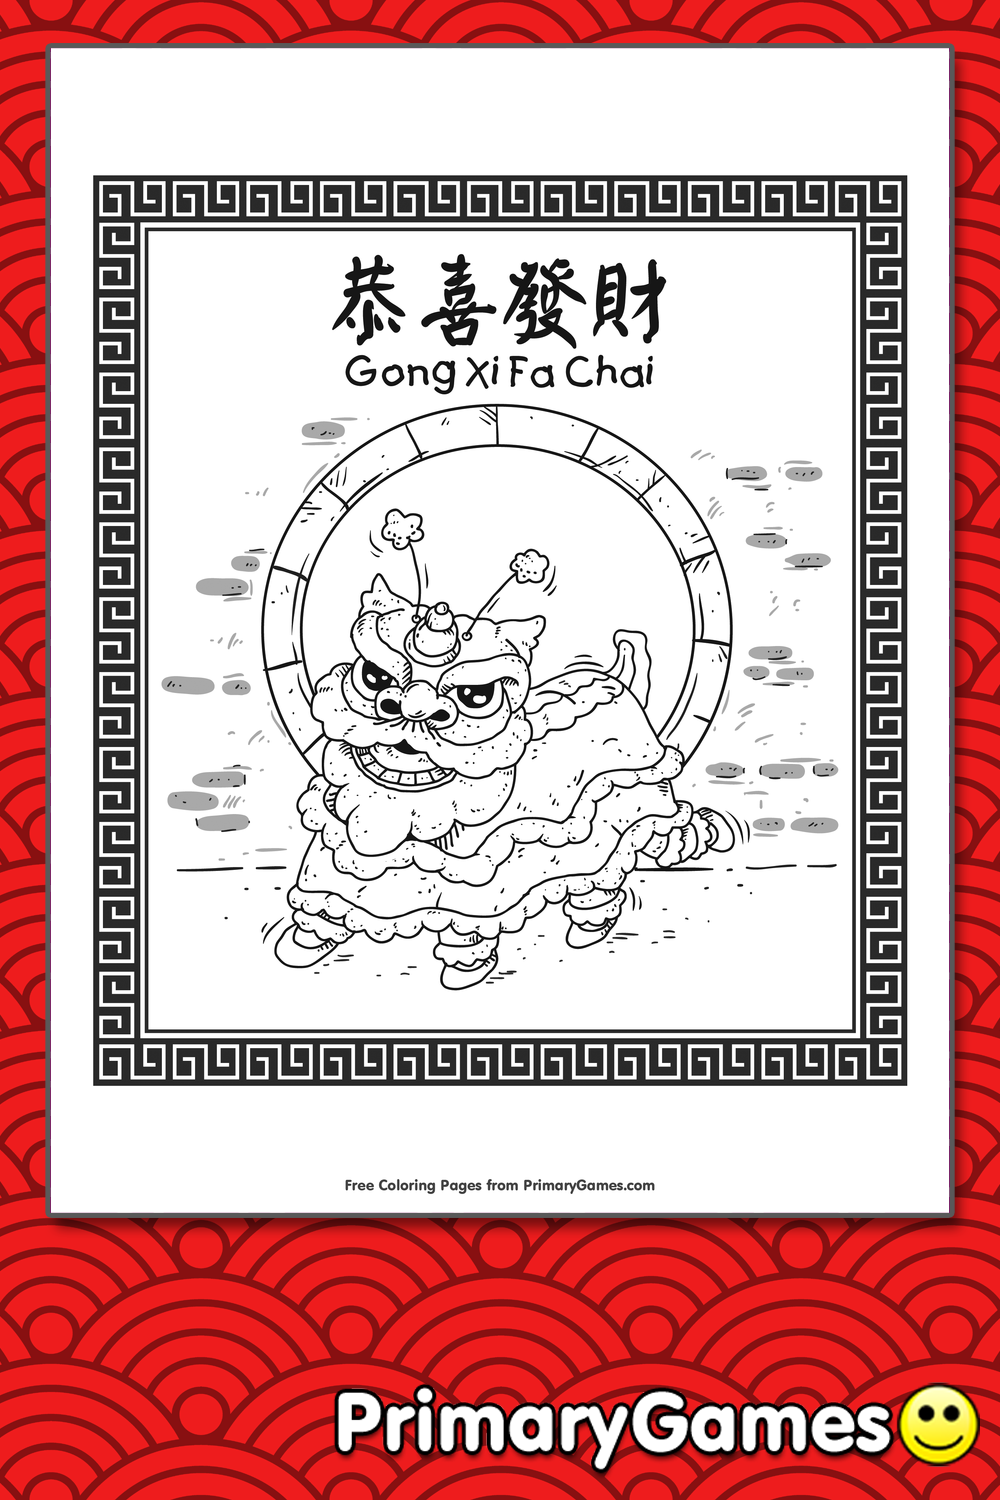 Chinese New Year Coloring Pages Pdf : Lion dance gong xi fa chai coloring page printable